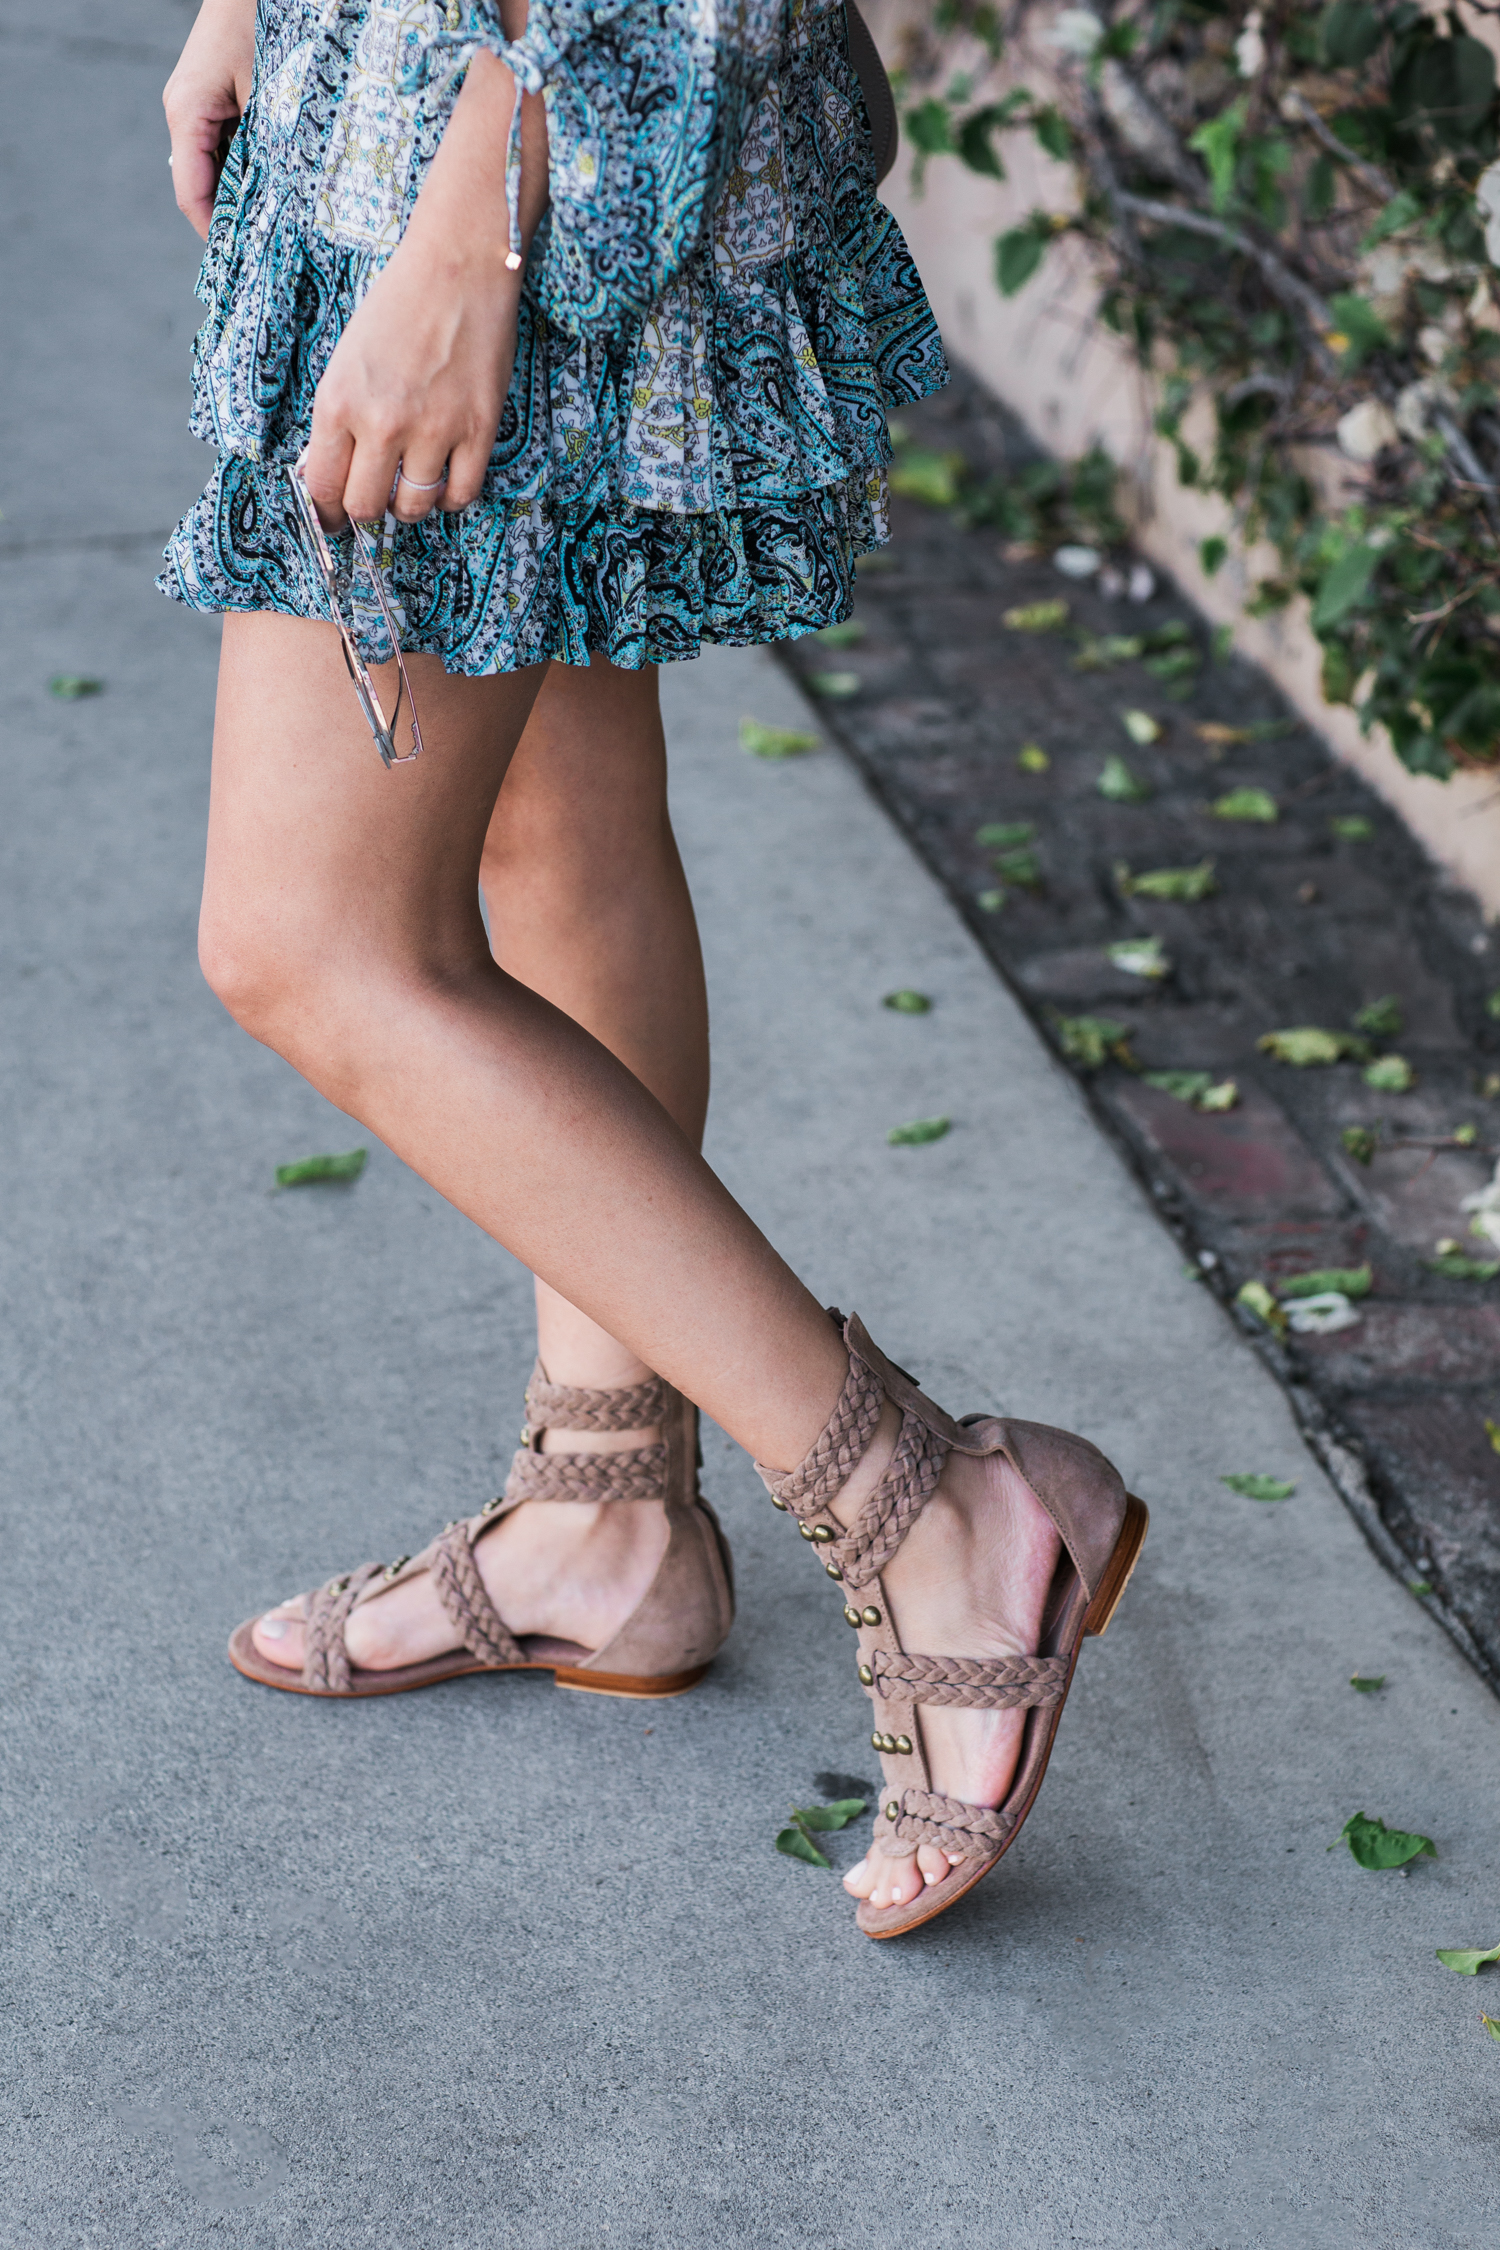 Style MBA wears Little Joe Woman Sandals